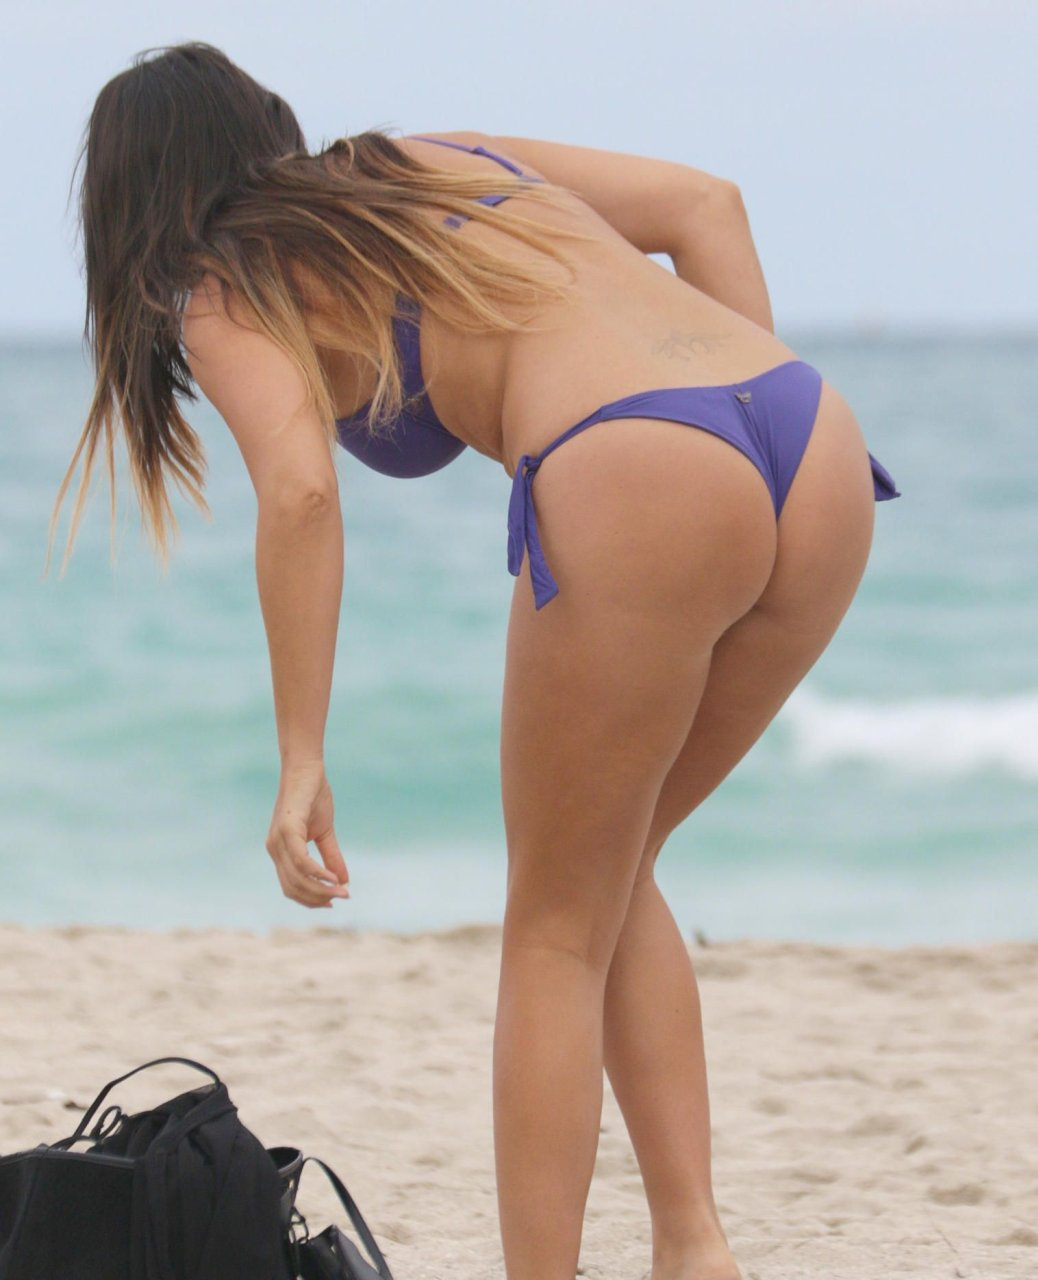 claudia romani in a bikini 8 photos thefappening